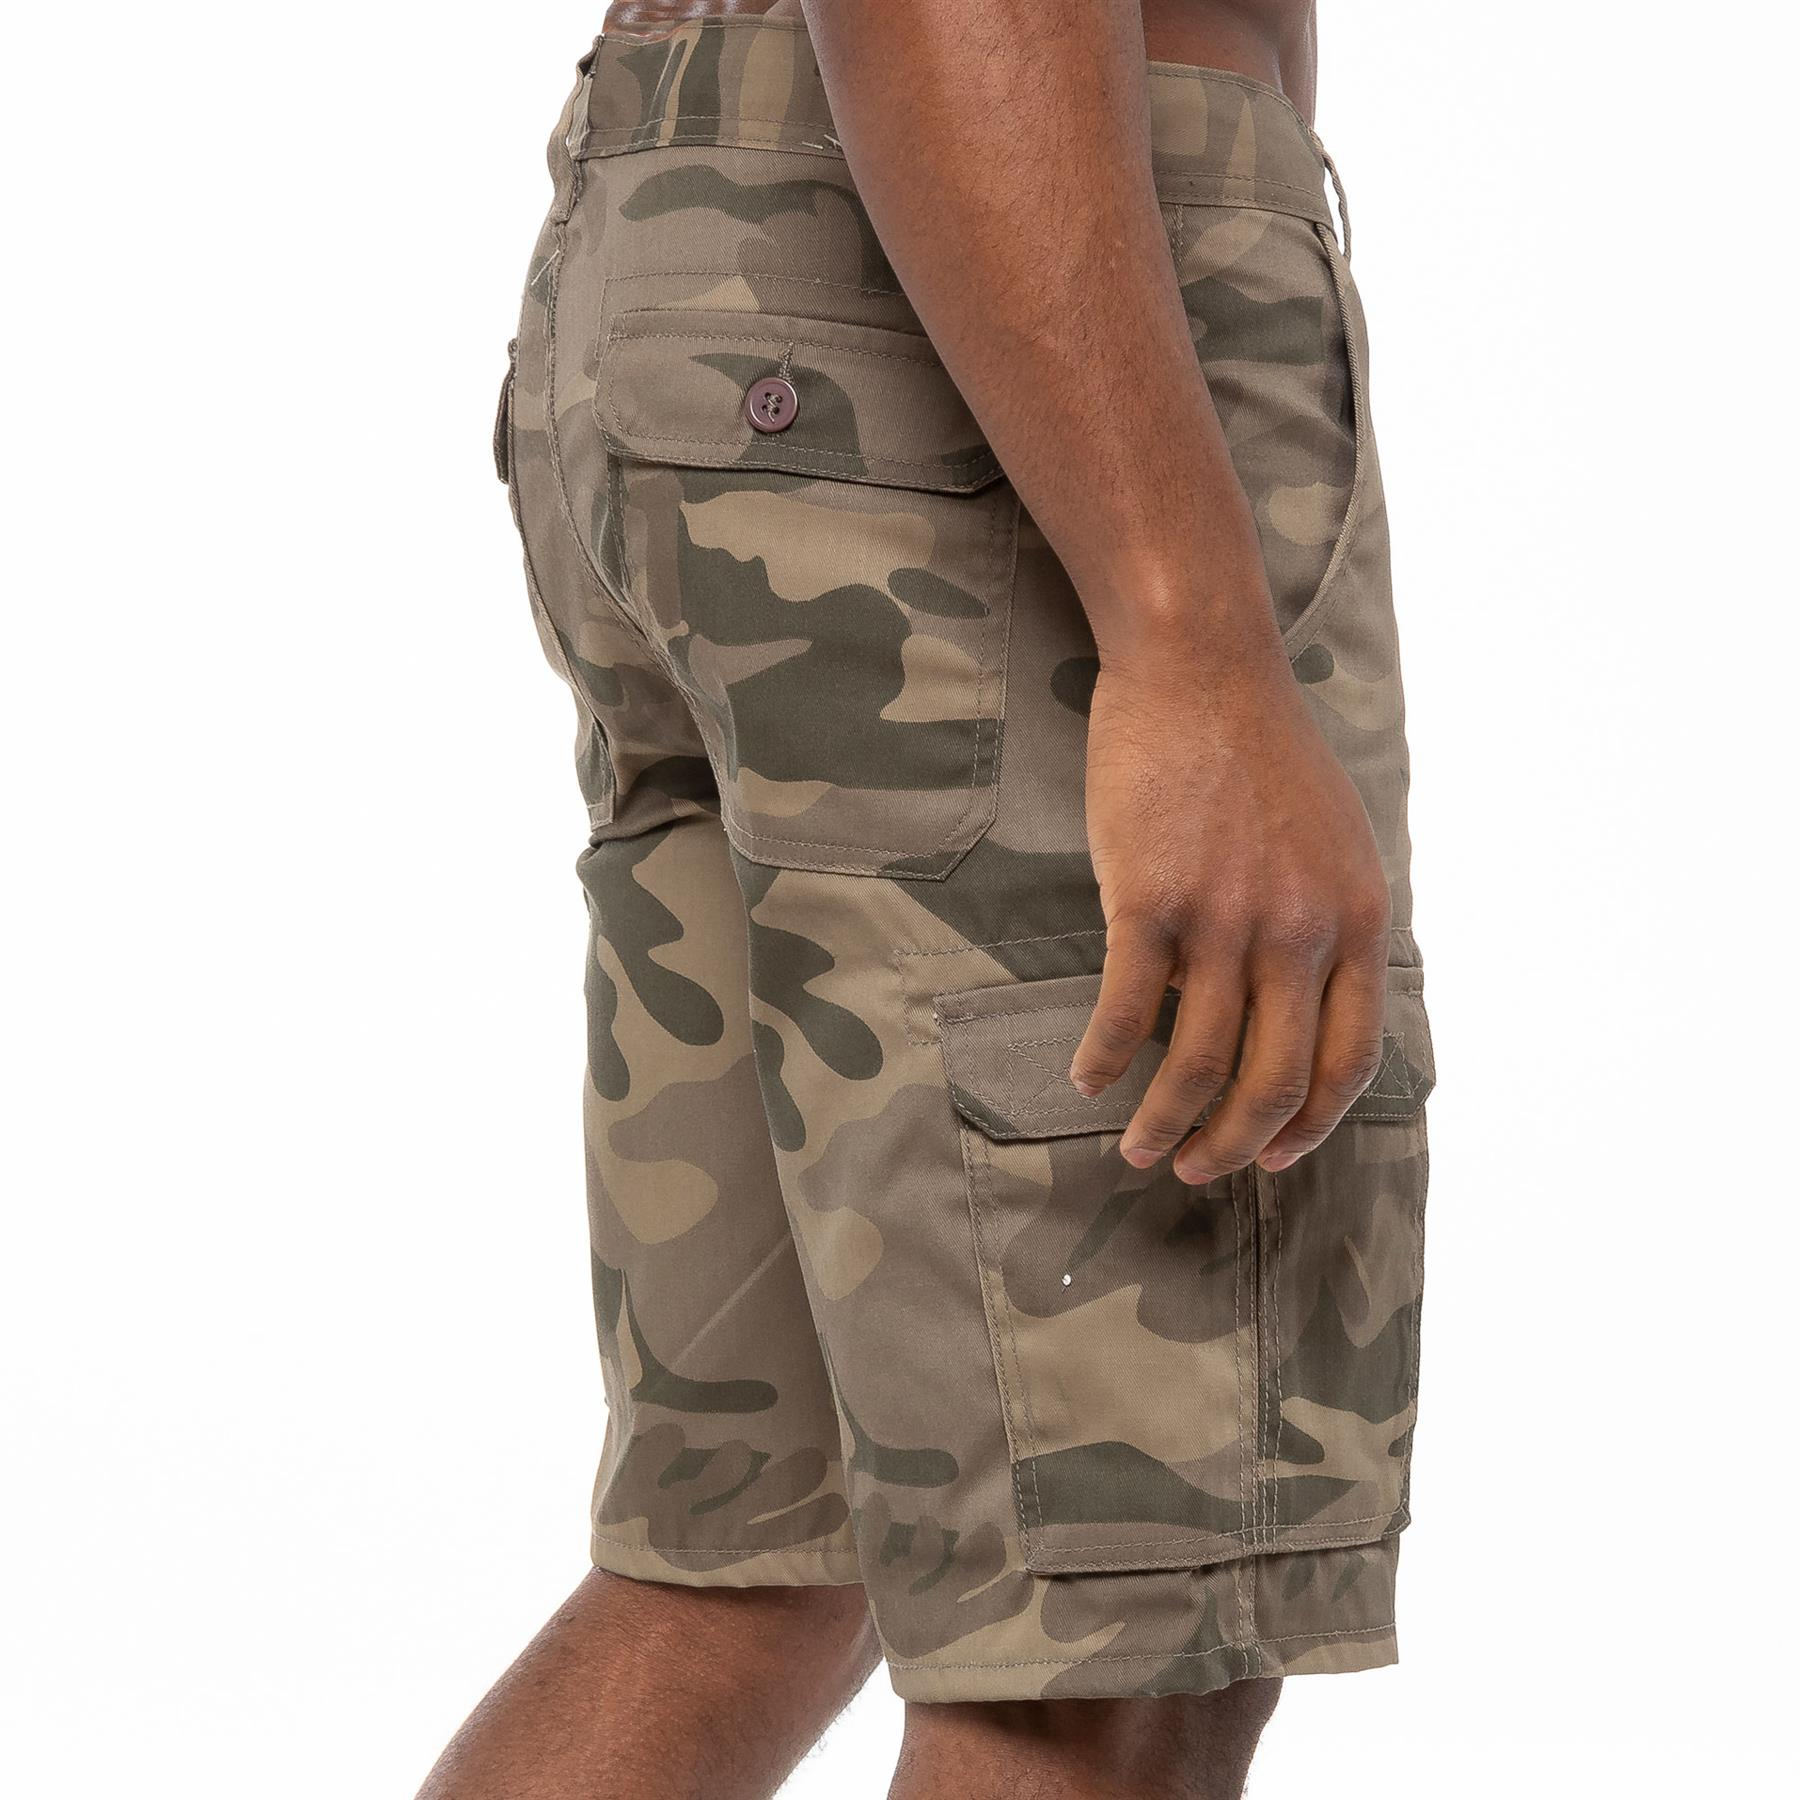 thumbnail 27 - Kruze Jeans Mens Army Combat Shorts Camouflage Cargo Casual Camo Work Half Pants